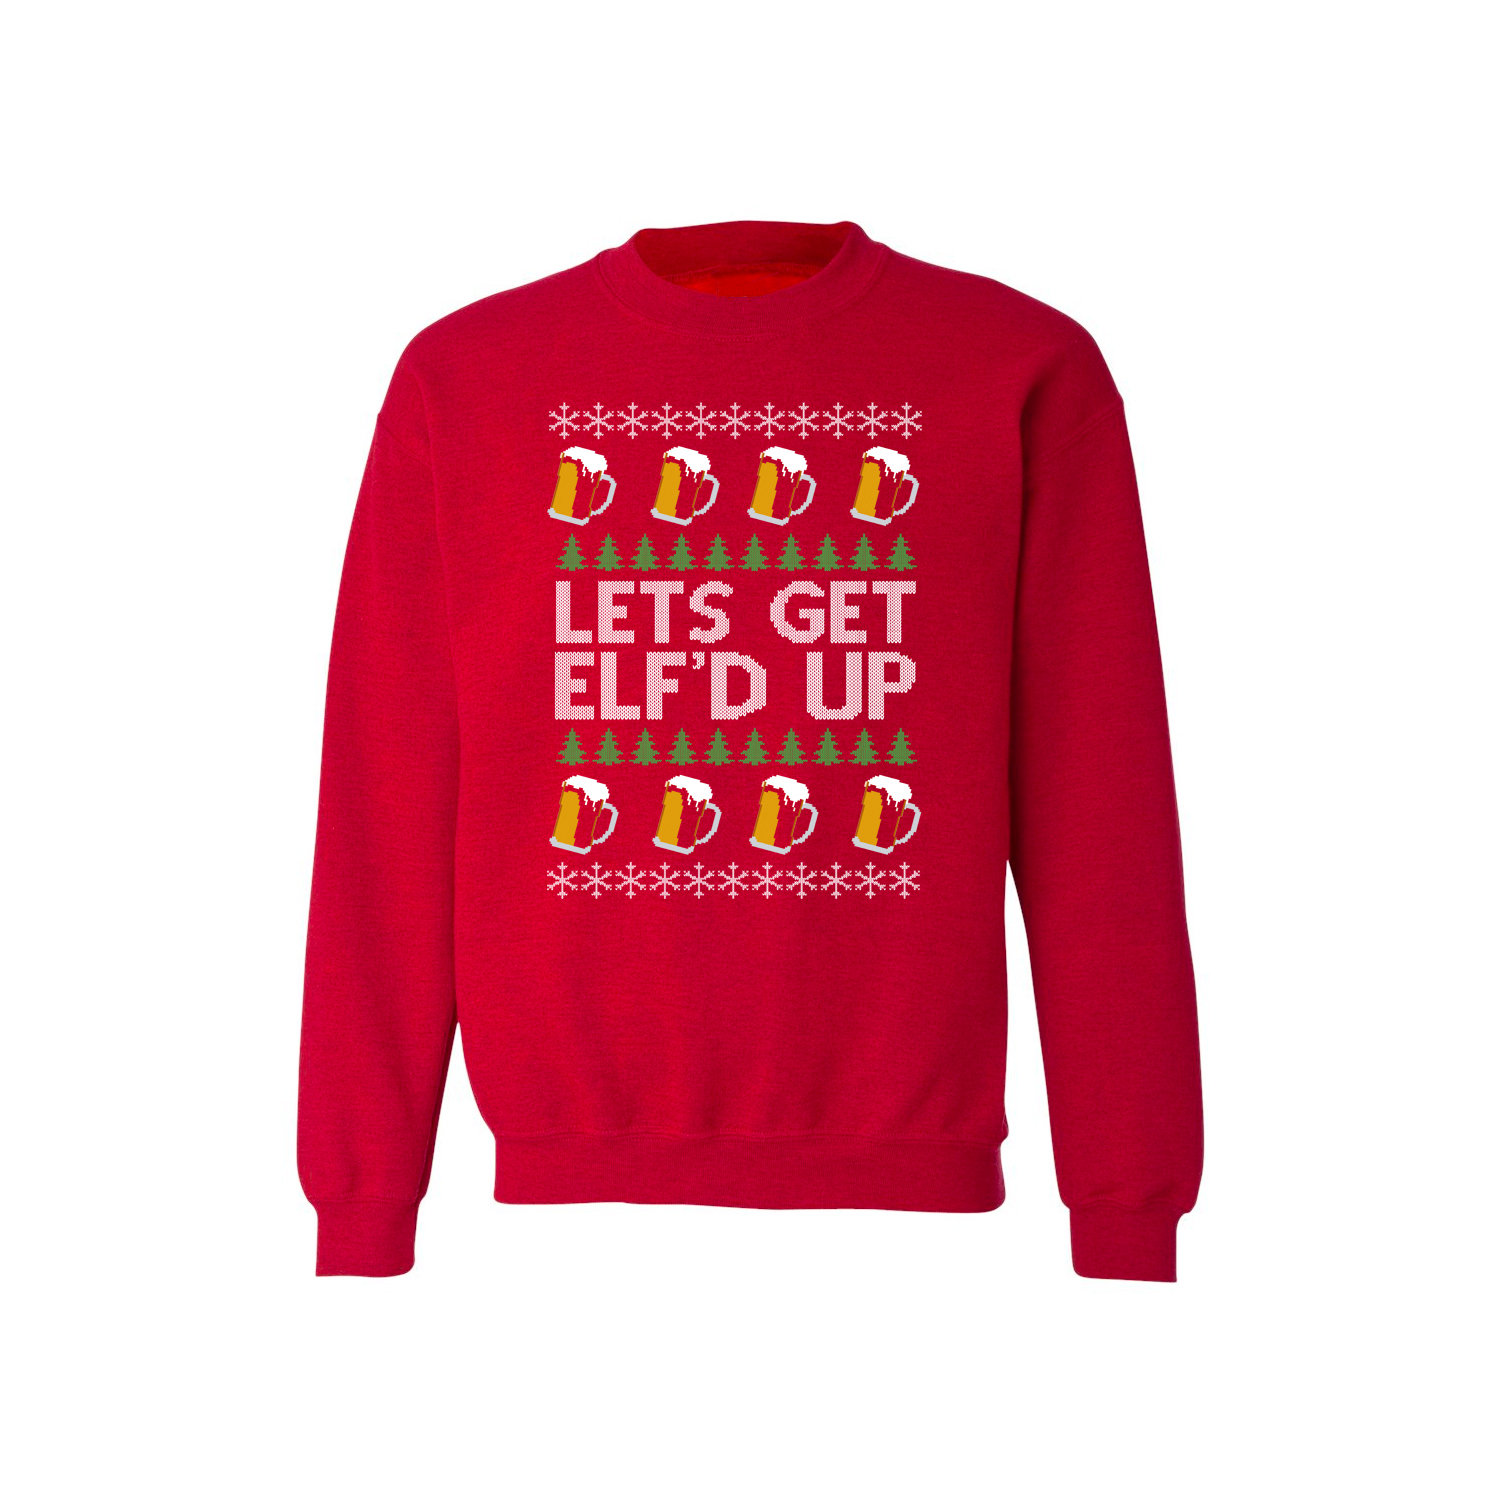 Sweatshirt - Christmas Sweater - Elf'd Up